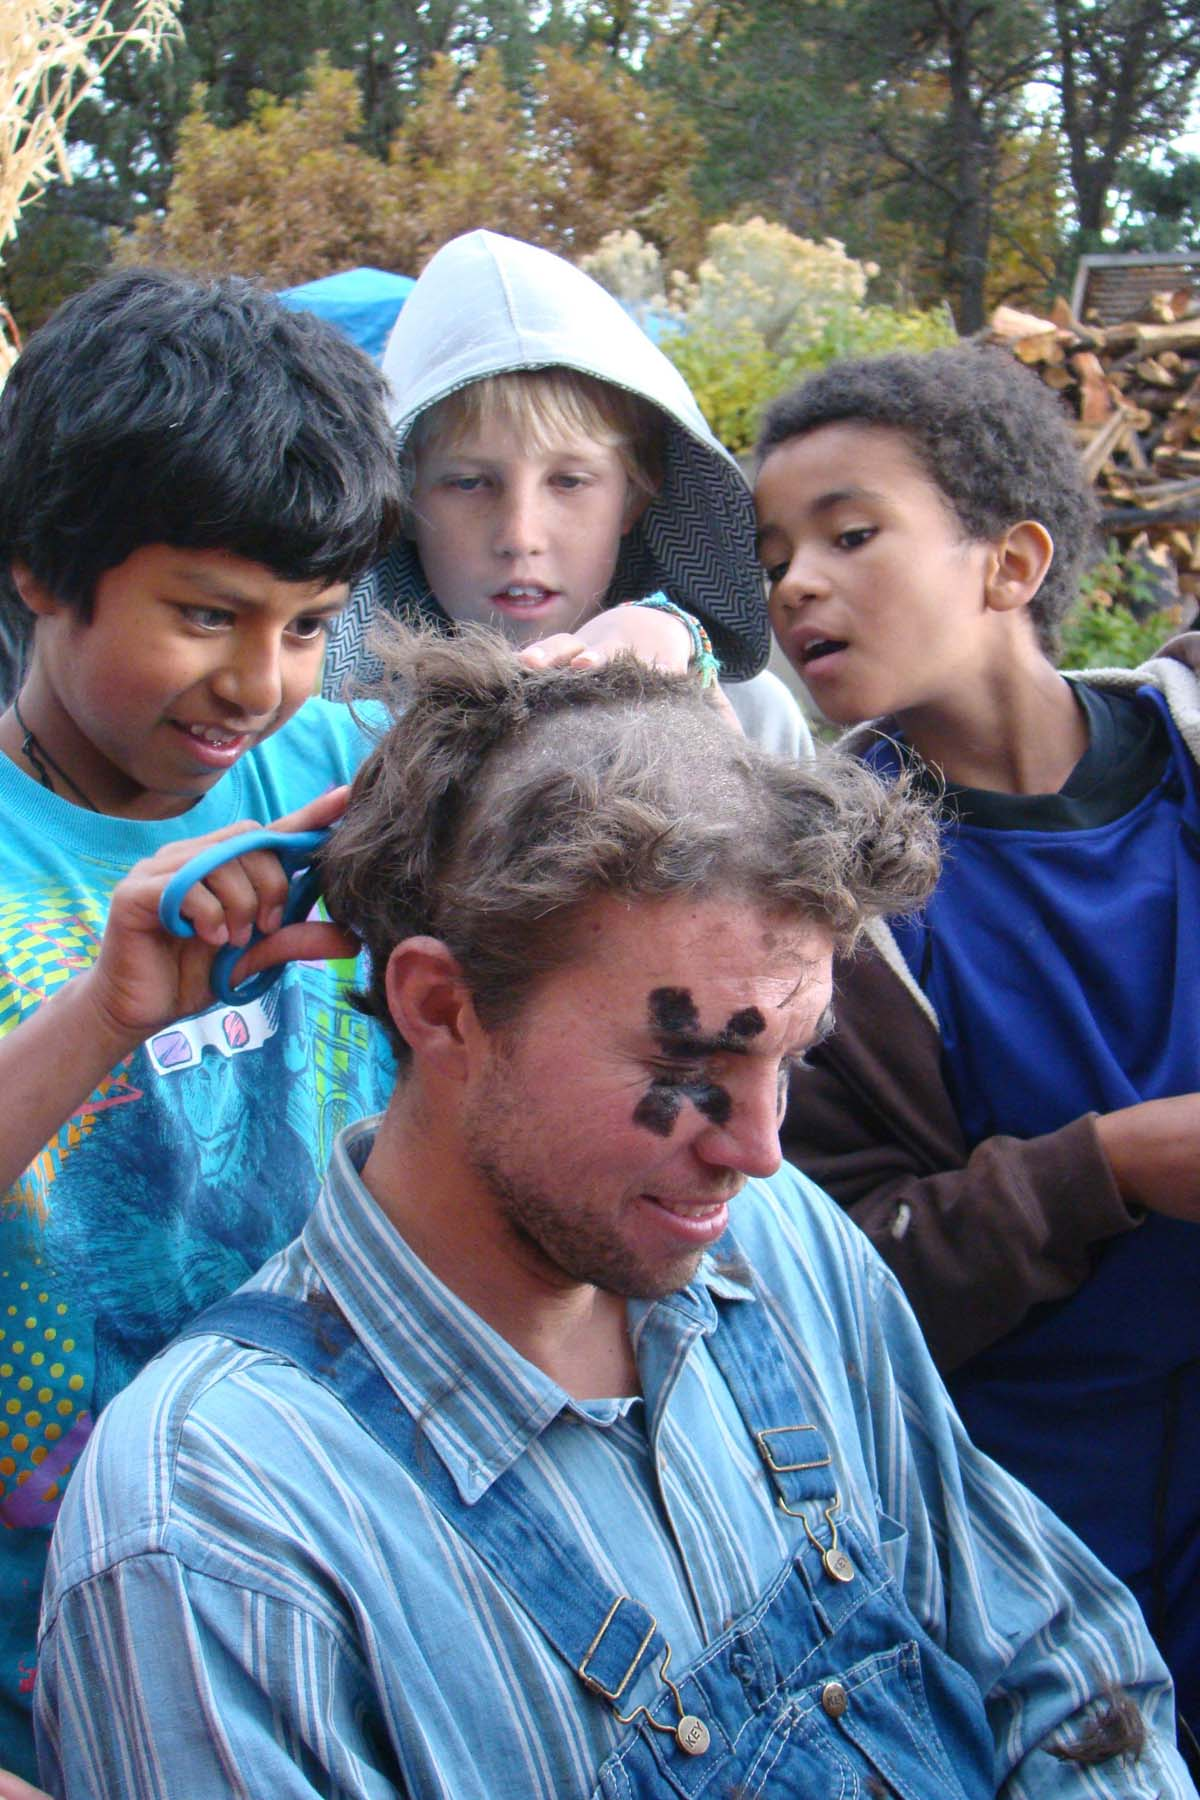 What's scarier than the Haunted Barnyard...? Not this hairdo- it's super awesome! He/She who sells the most raffle tickets shears the shepherd.